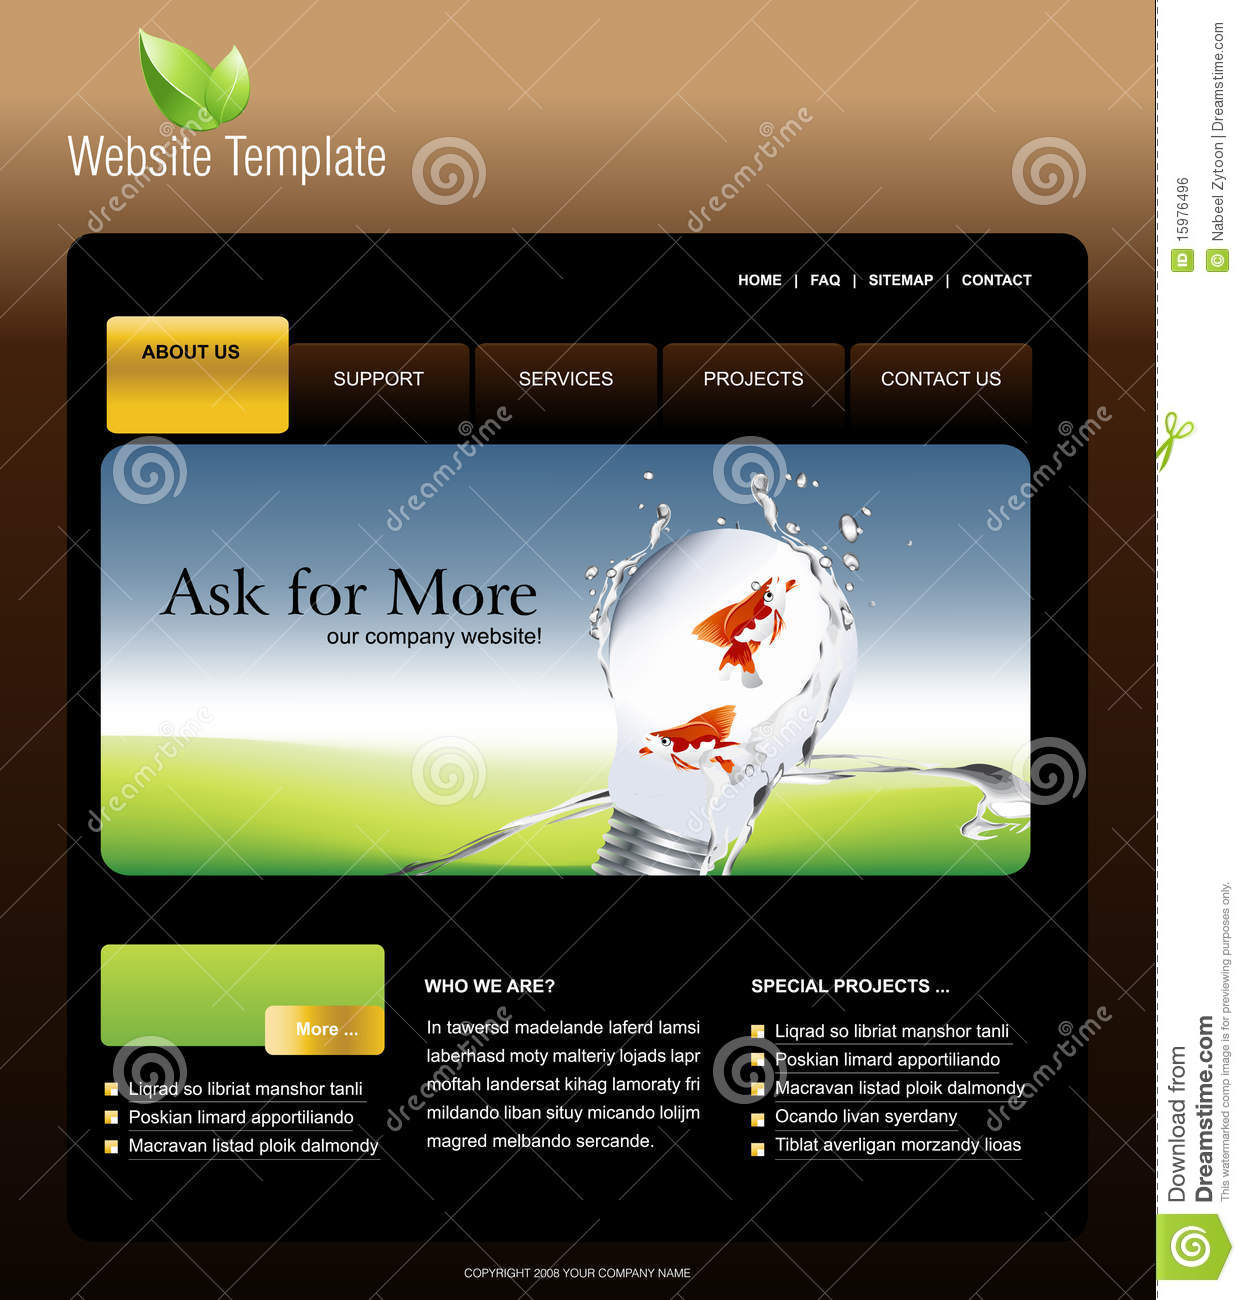 website template royalty free stock image image 15976496